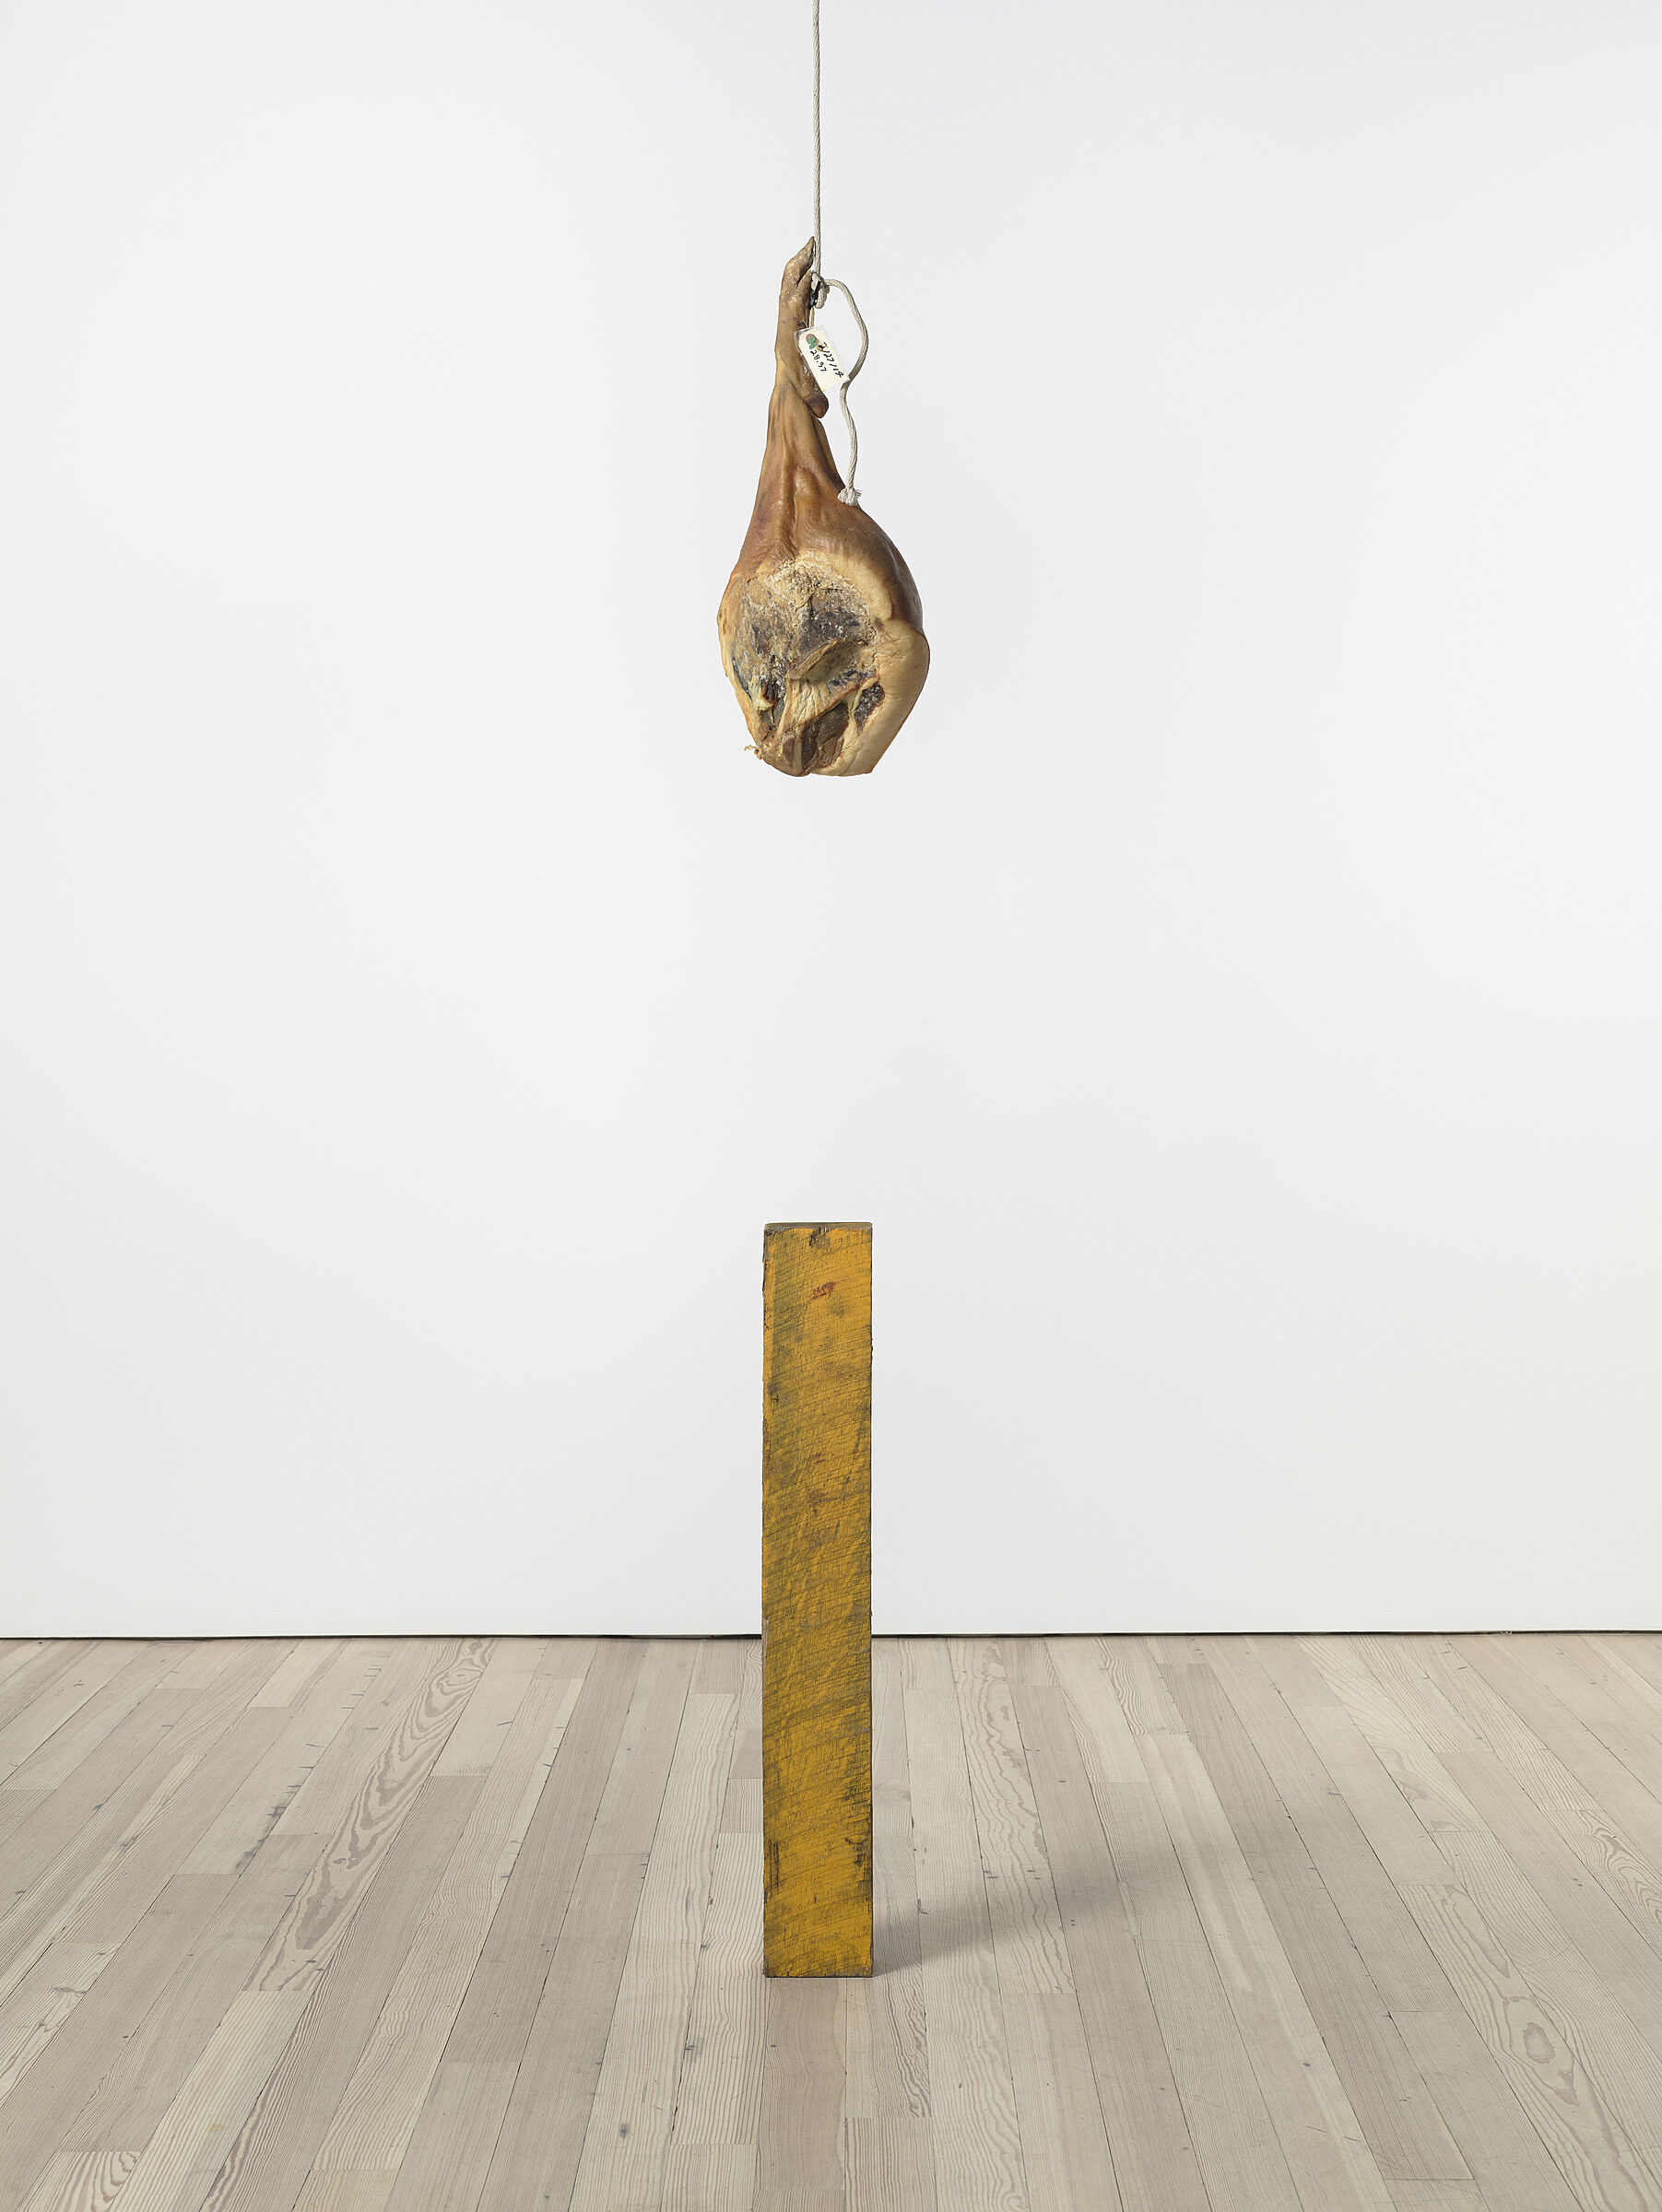 An art installation of a leg of ham hanging over a yellow pole.